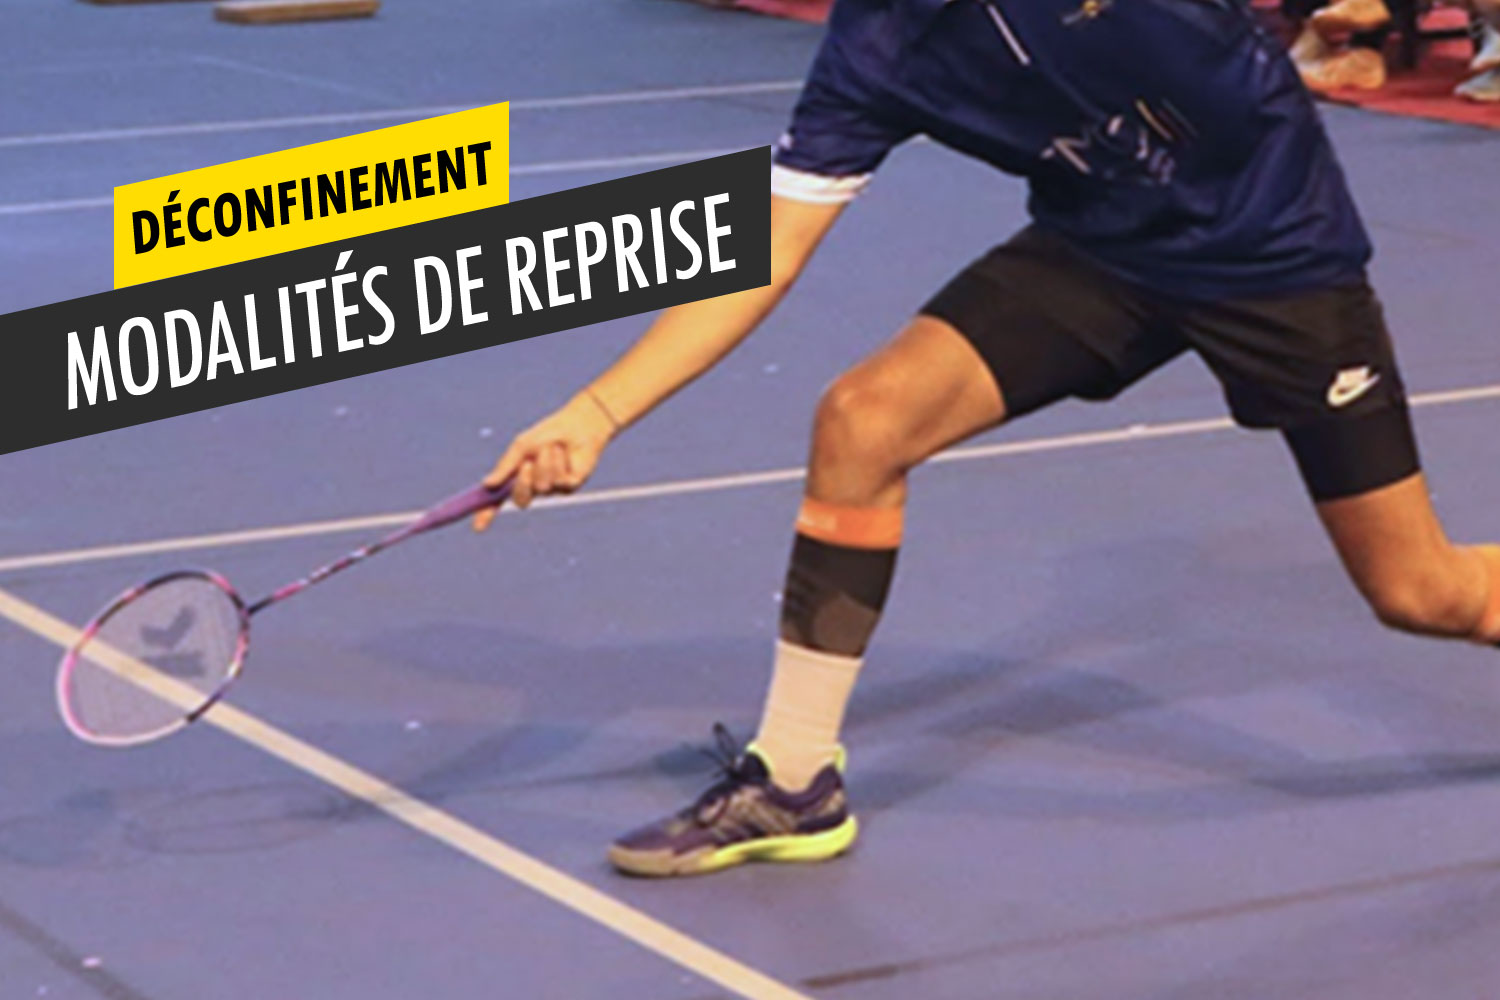 Reprise du badminton post-confinement